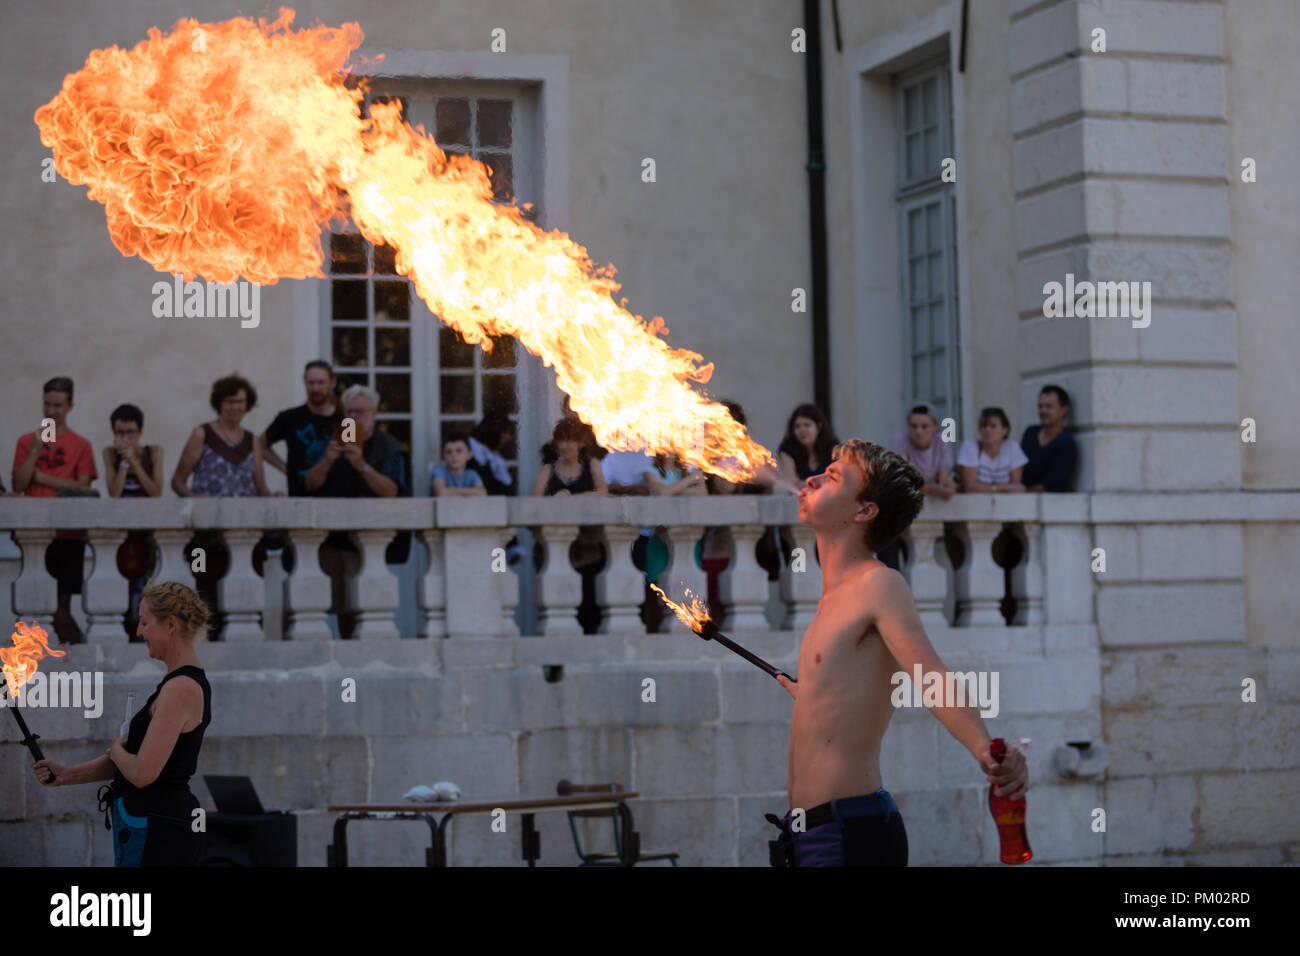 Sassenage castle, Isere, France - September 15 2018 : European Heritage Day, Young fire breather spitting flames. - Stock Image